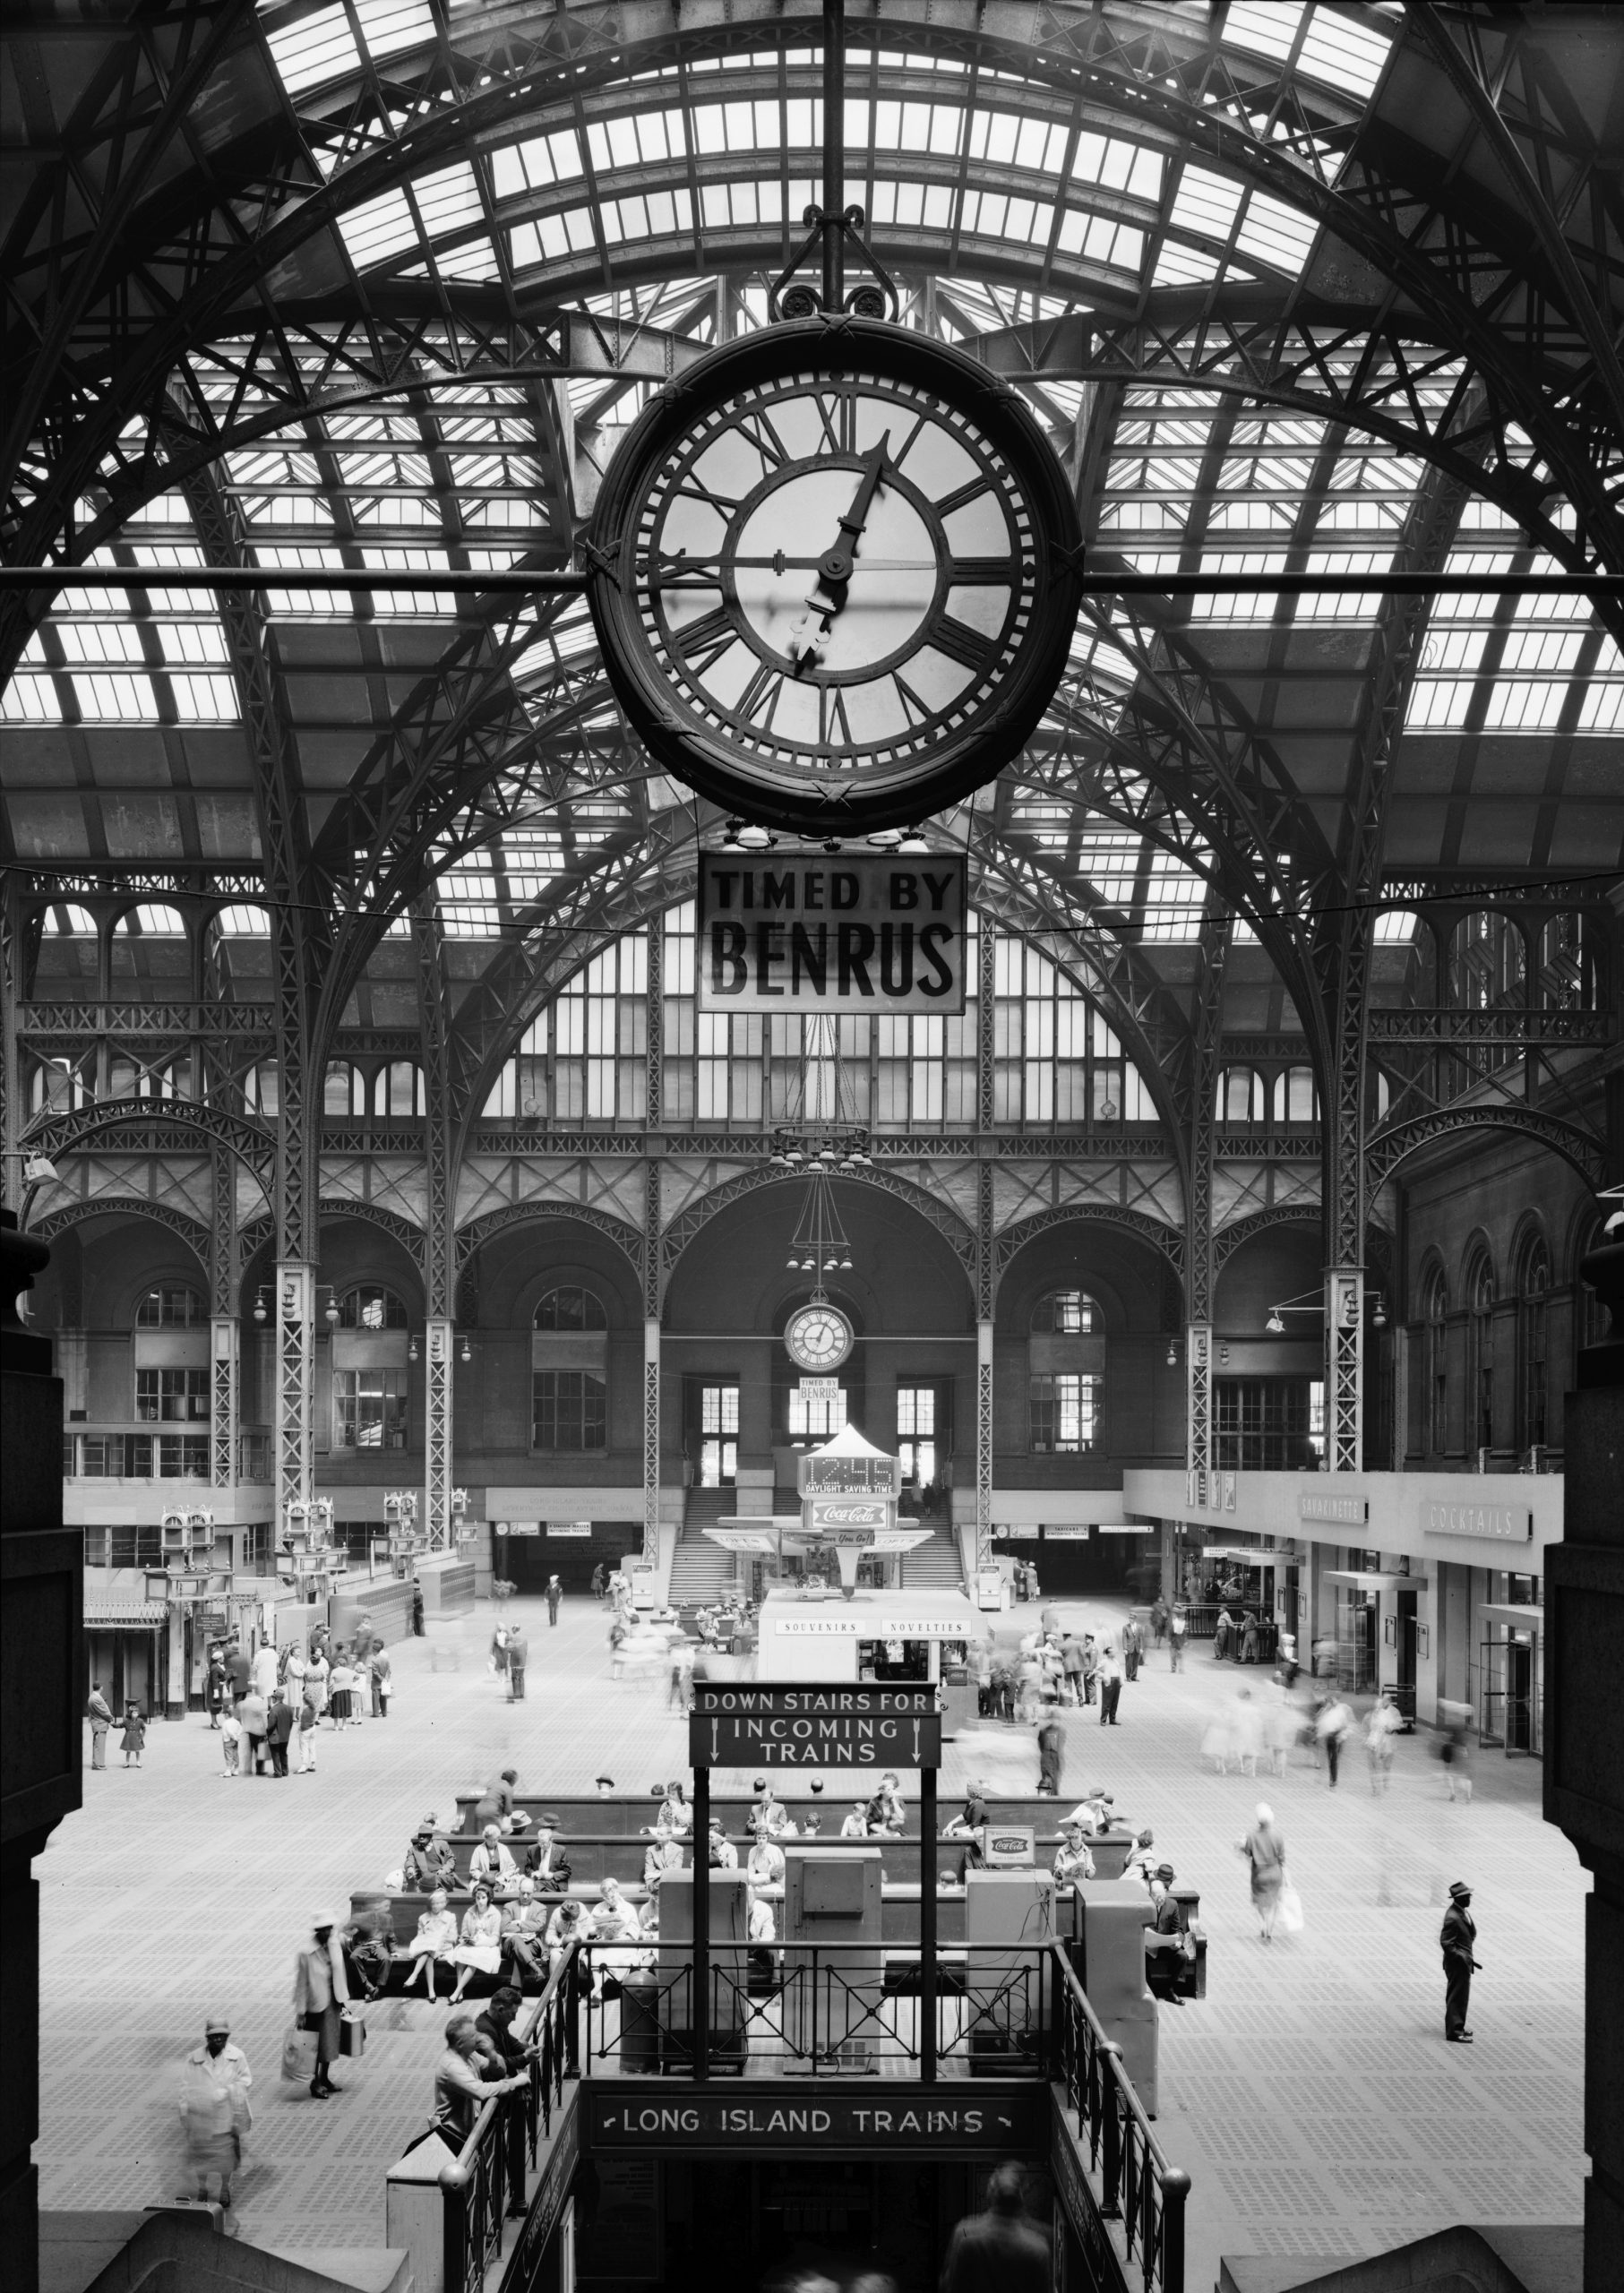 As the old Pennsylvania station was reduced to rubble, the New York City Landmarks Preservation Commission was established to prevent other landmarks from sharing the same fate. (Image: wikimedia / CC0 1.0)